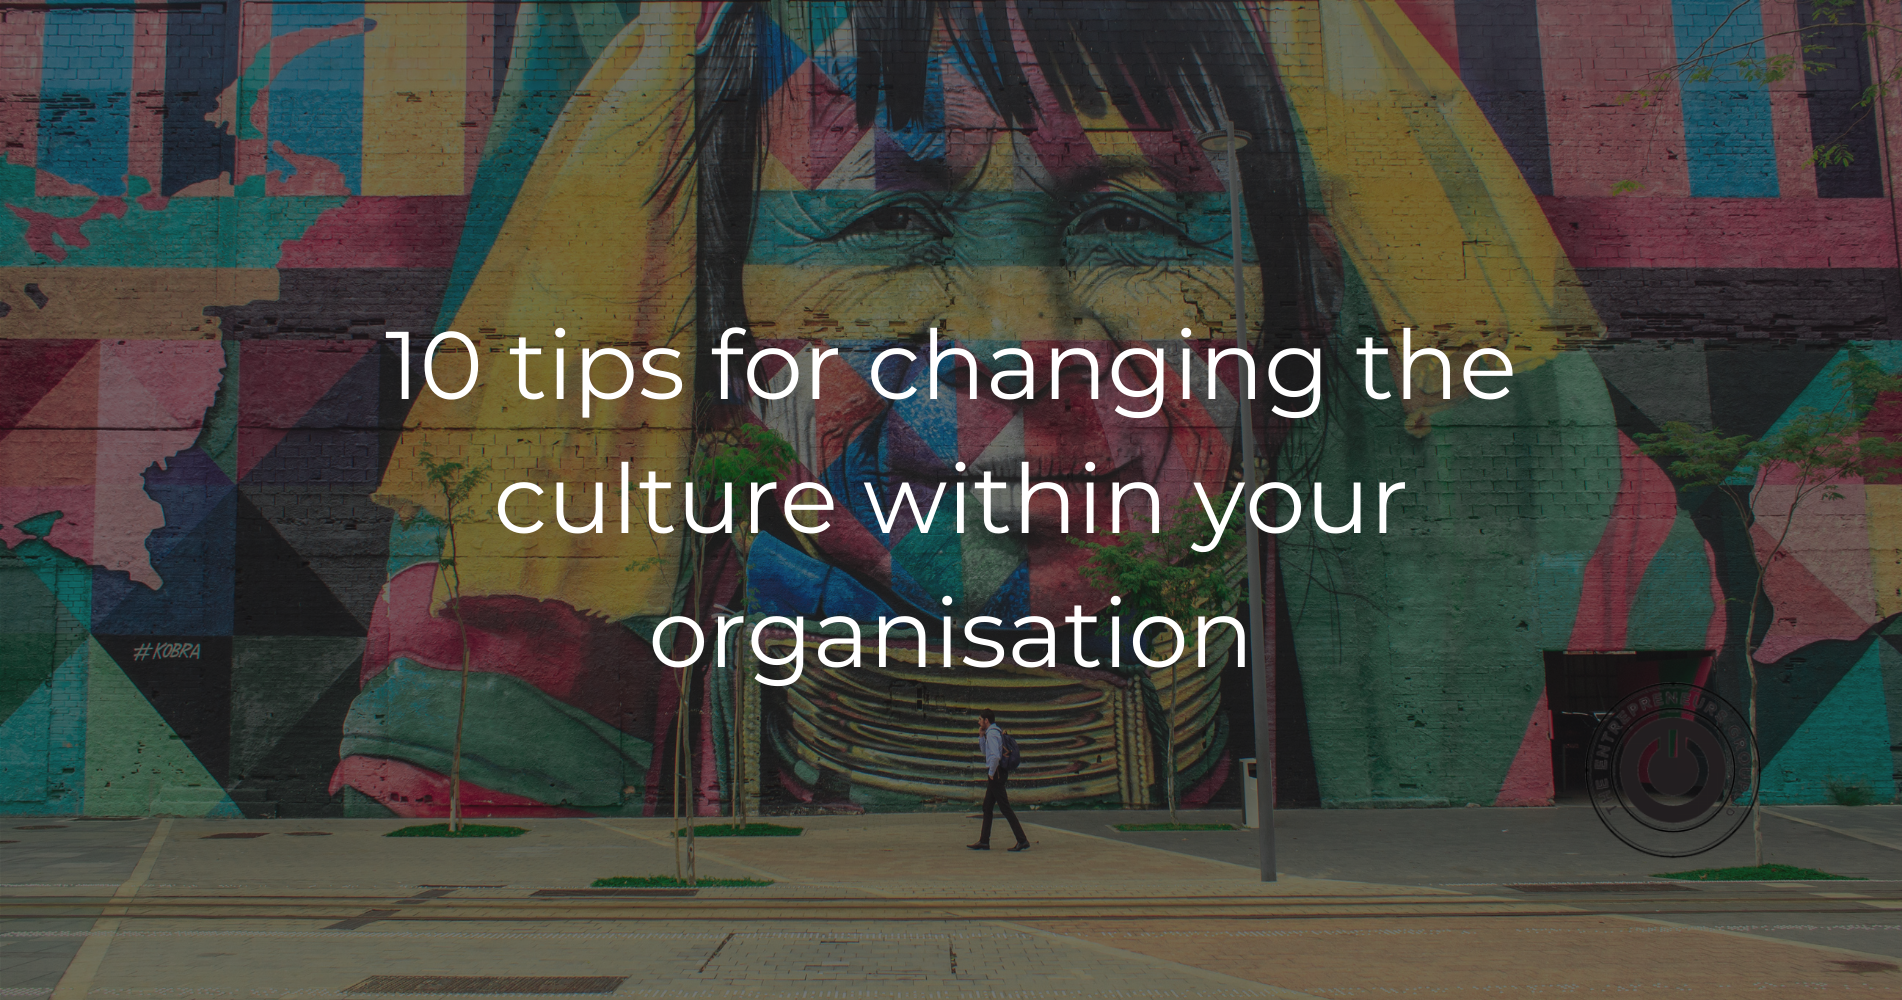 My 10 tips for changing the culture within your organisation